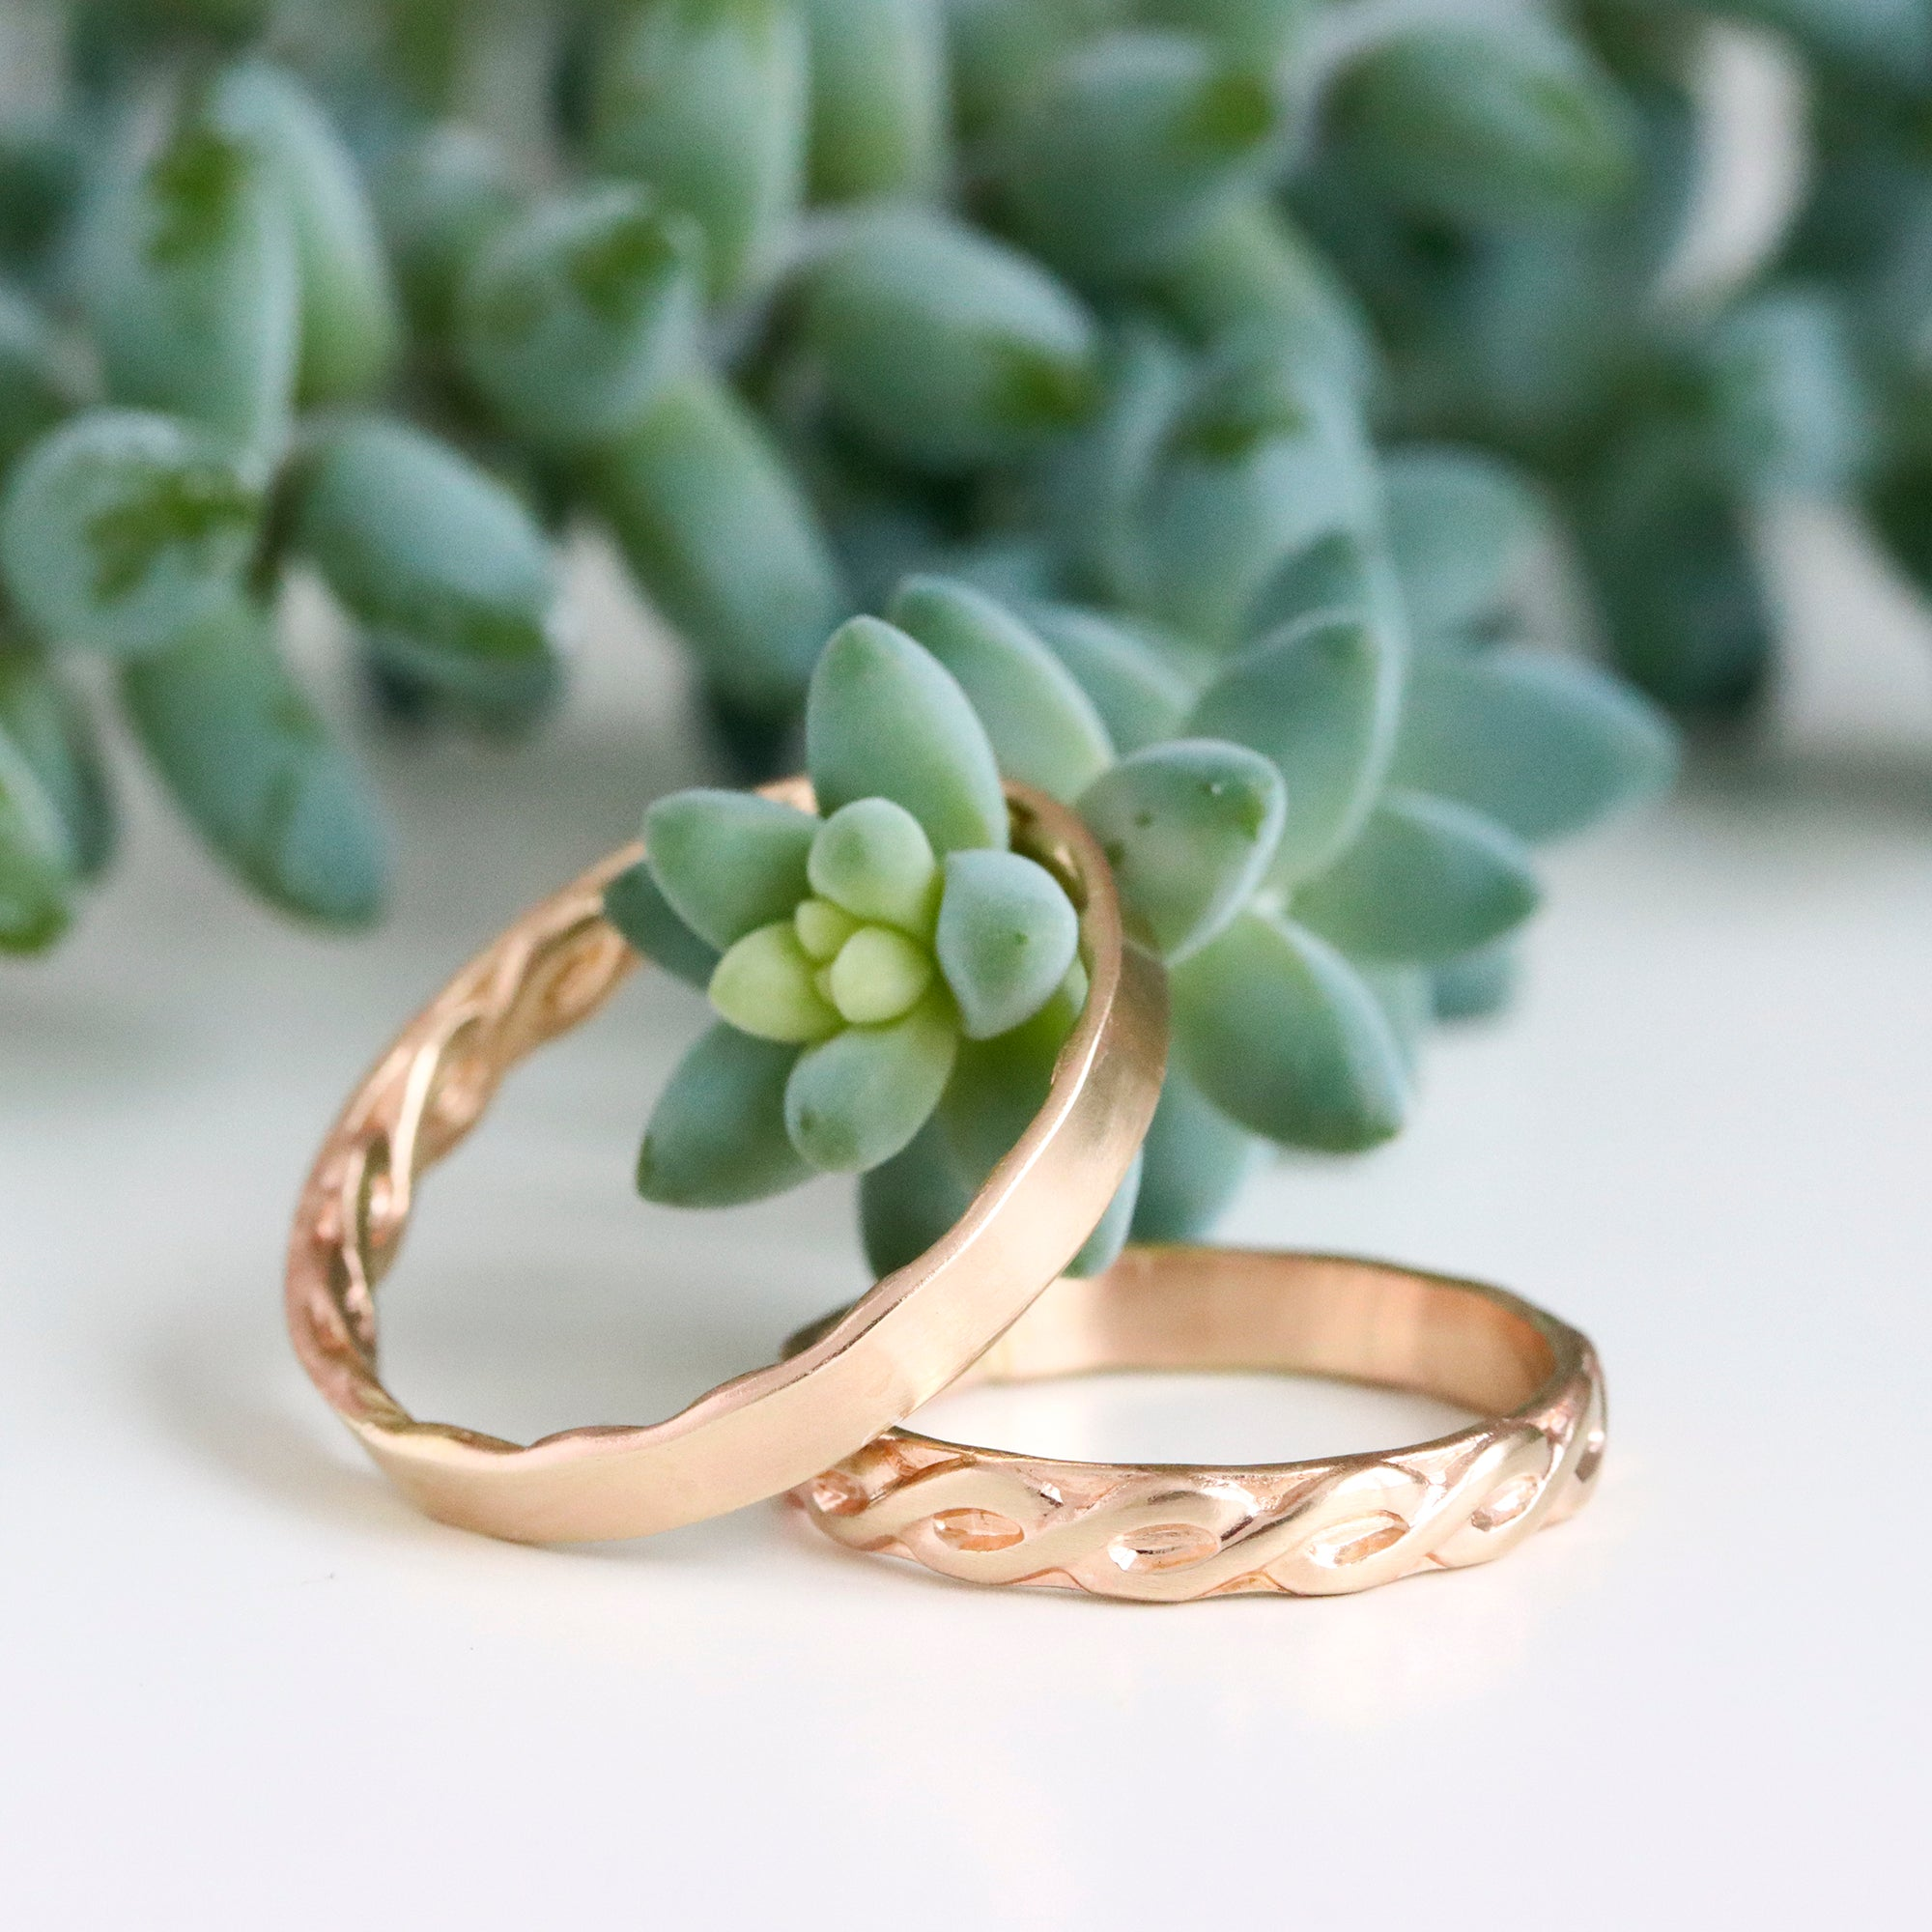 Rebecca Haas Jewelry Spring Collection - Golden Bands